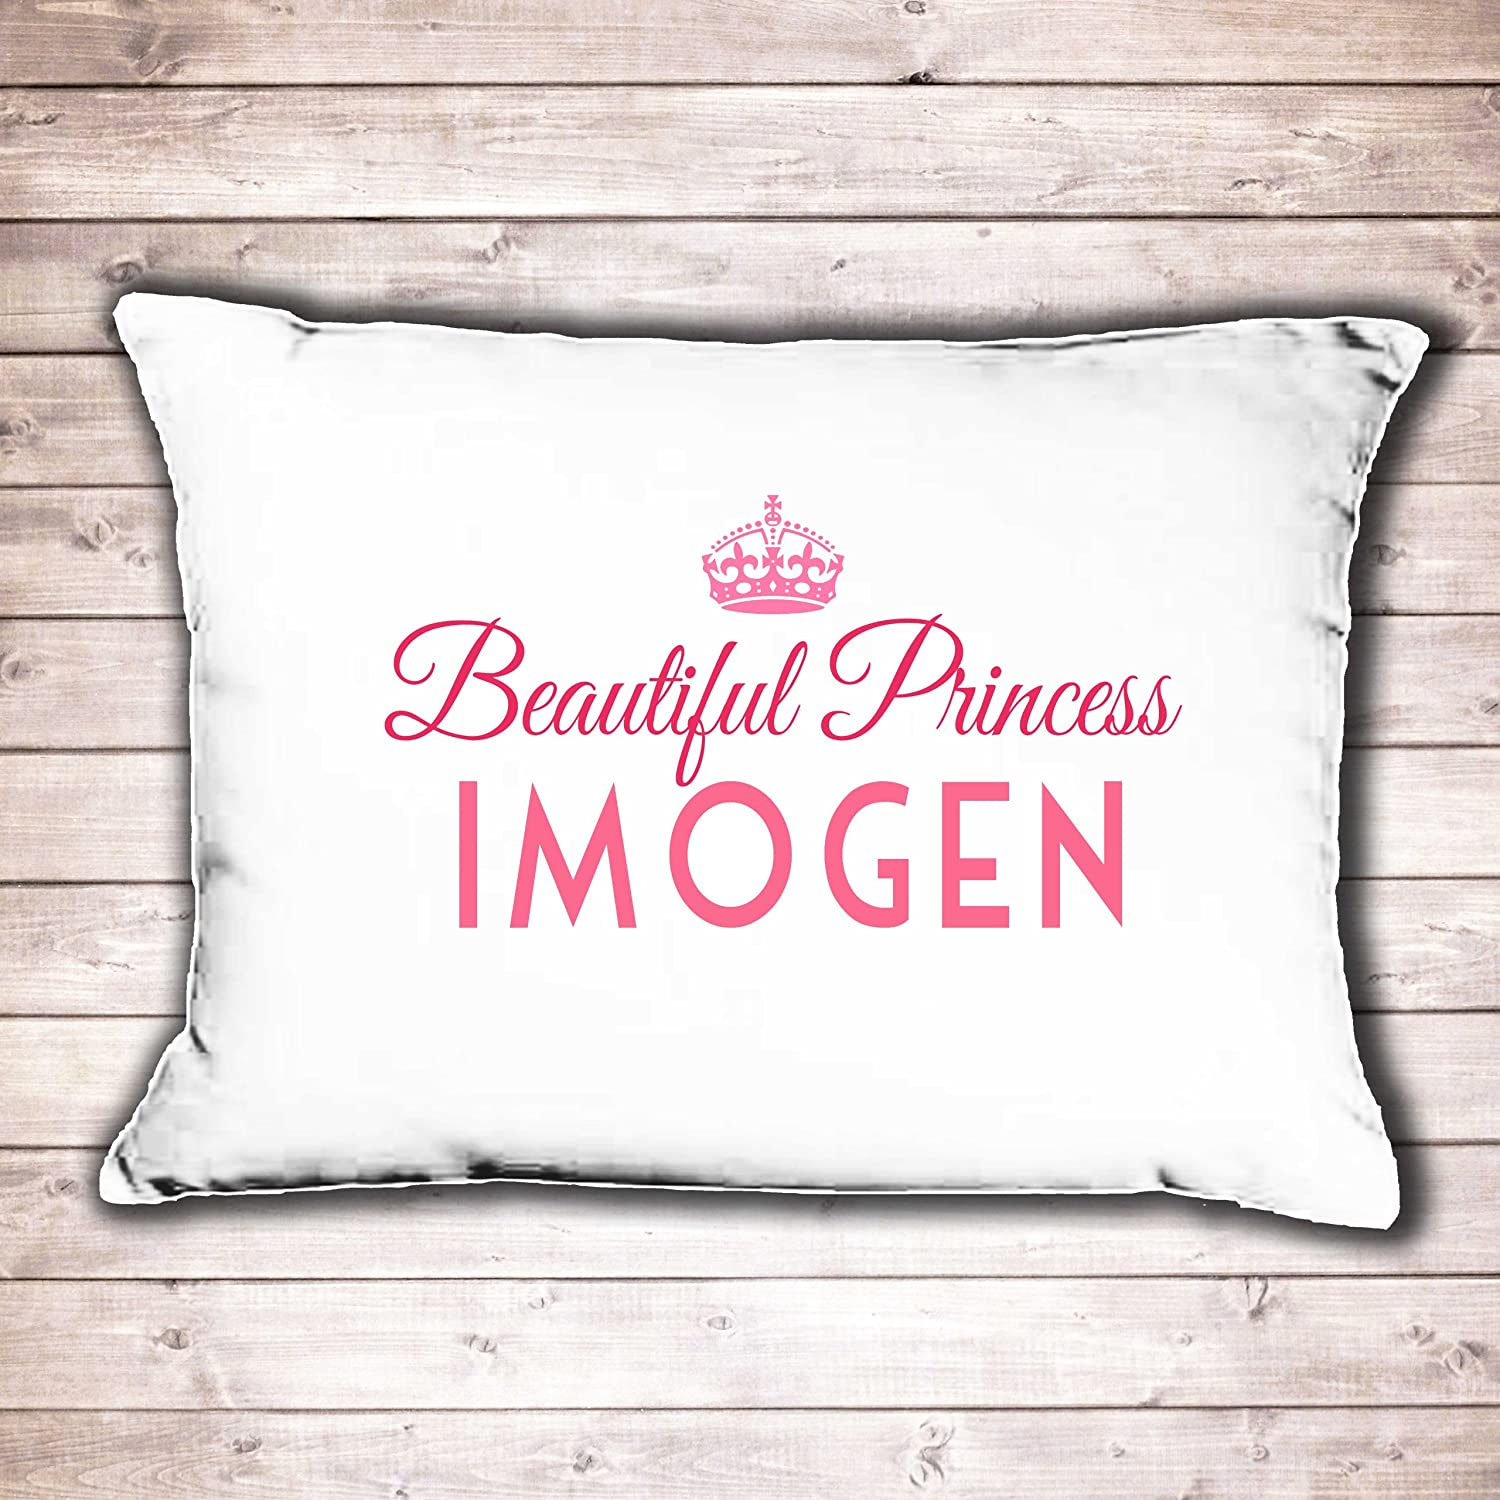 Personalised pillow case girls Princess design perfect birthday gift: Amazon.co.uk: Kitchen \u0026 Home